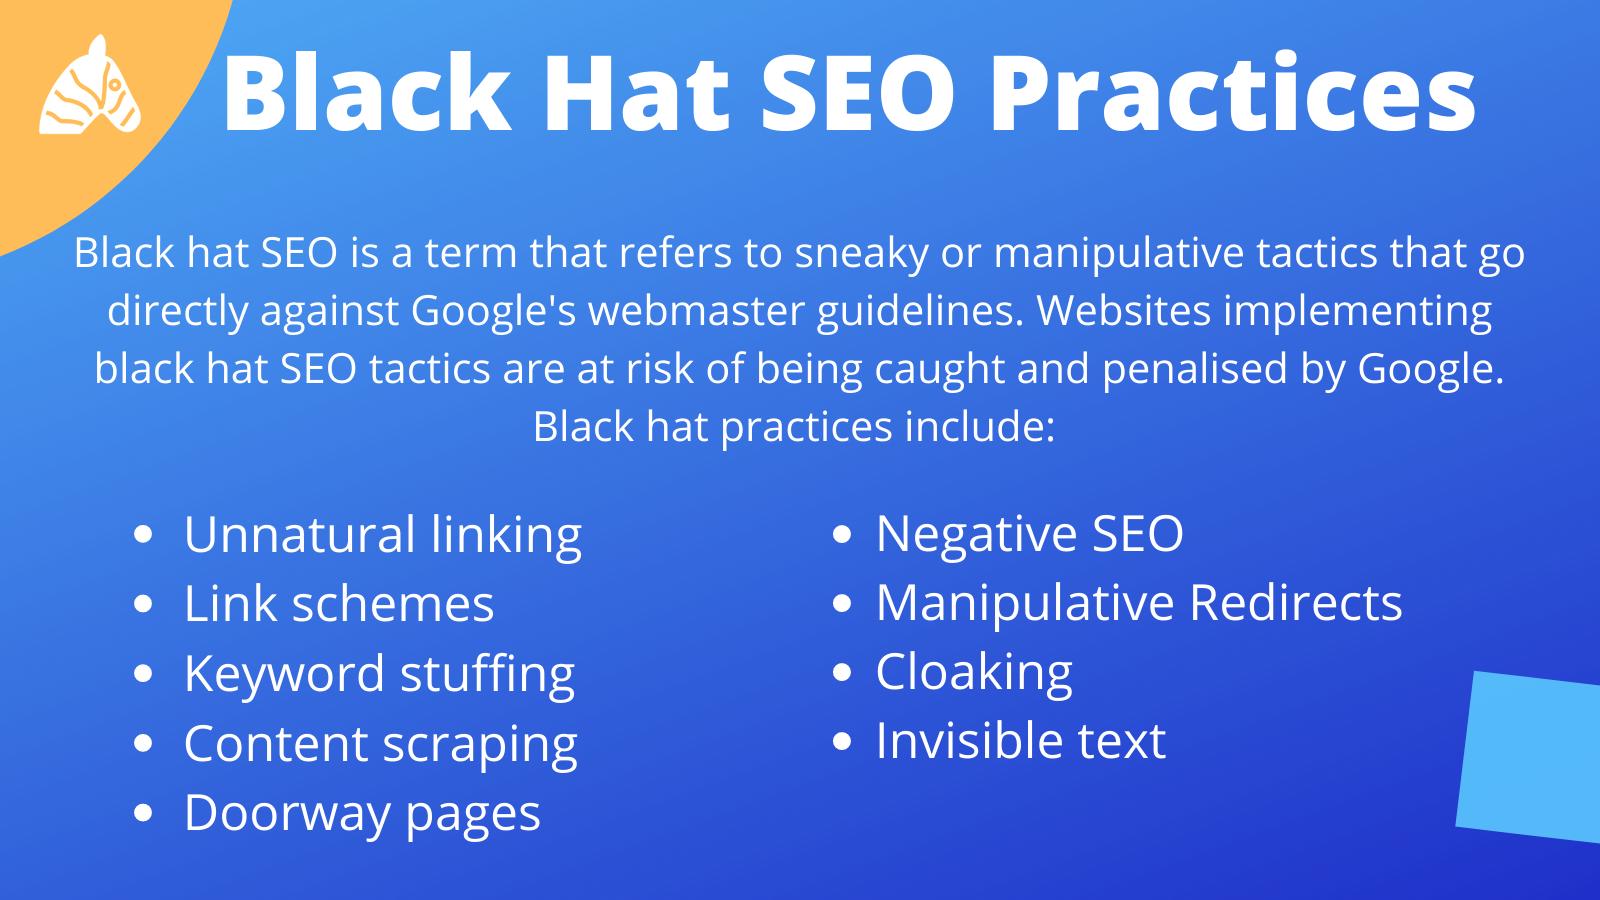 Black hat SEO practices Google Webmasters advise to avoid